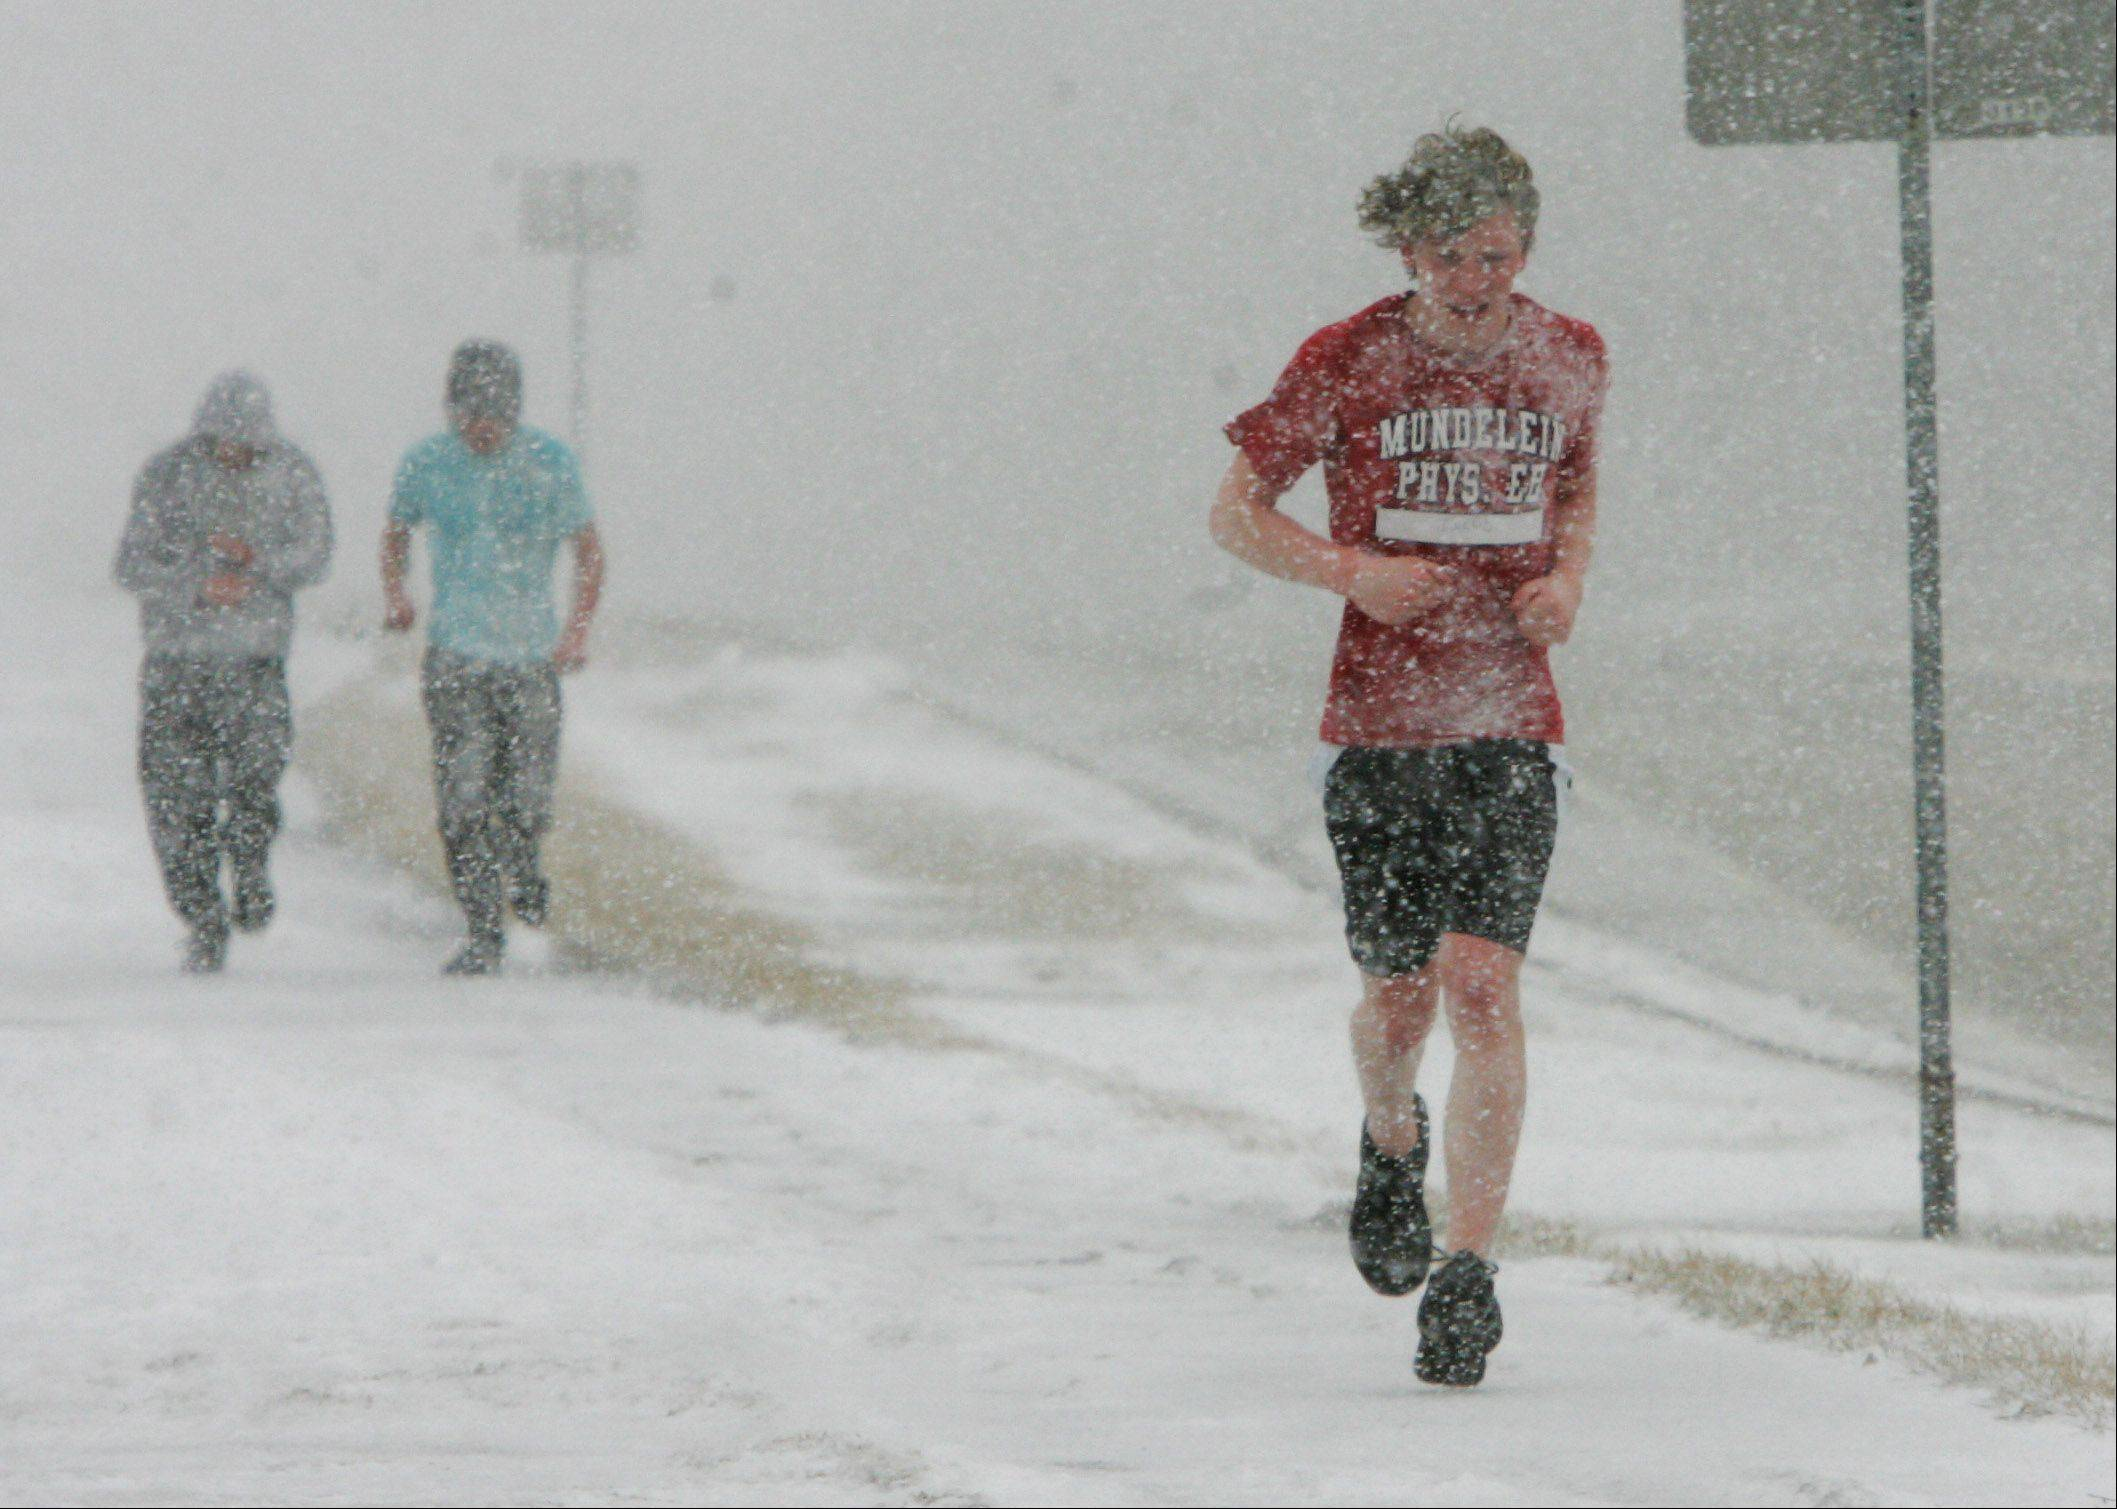 Junior Jacob Petri runs with other Mundelein High School students in a strength and conditioning class during the snow storm that hit Lake County. Everyone thinks that newspaper photographers have a great job, and I always tell them its great until you have to get pictures in the middle of a snowstorm or when the temperature is below zero. But somedays you get lucky. And on this day while driving in the blizzard, I caught these kids who got stuck in the storm when it came up quickly.